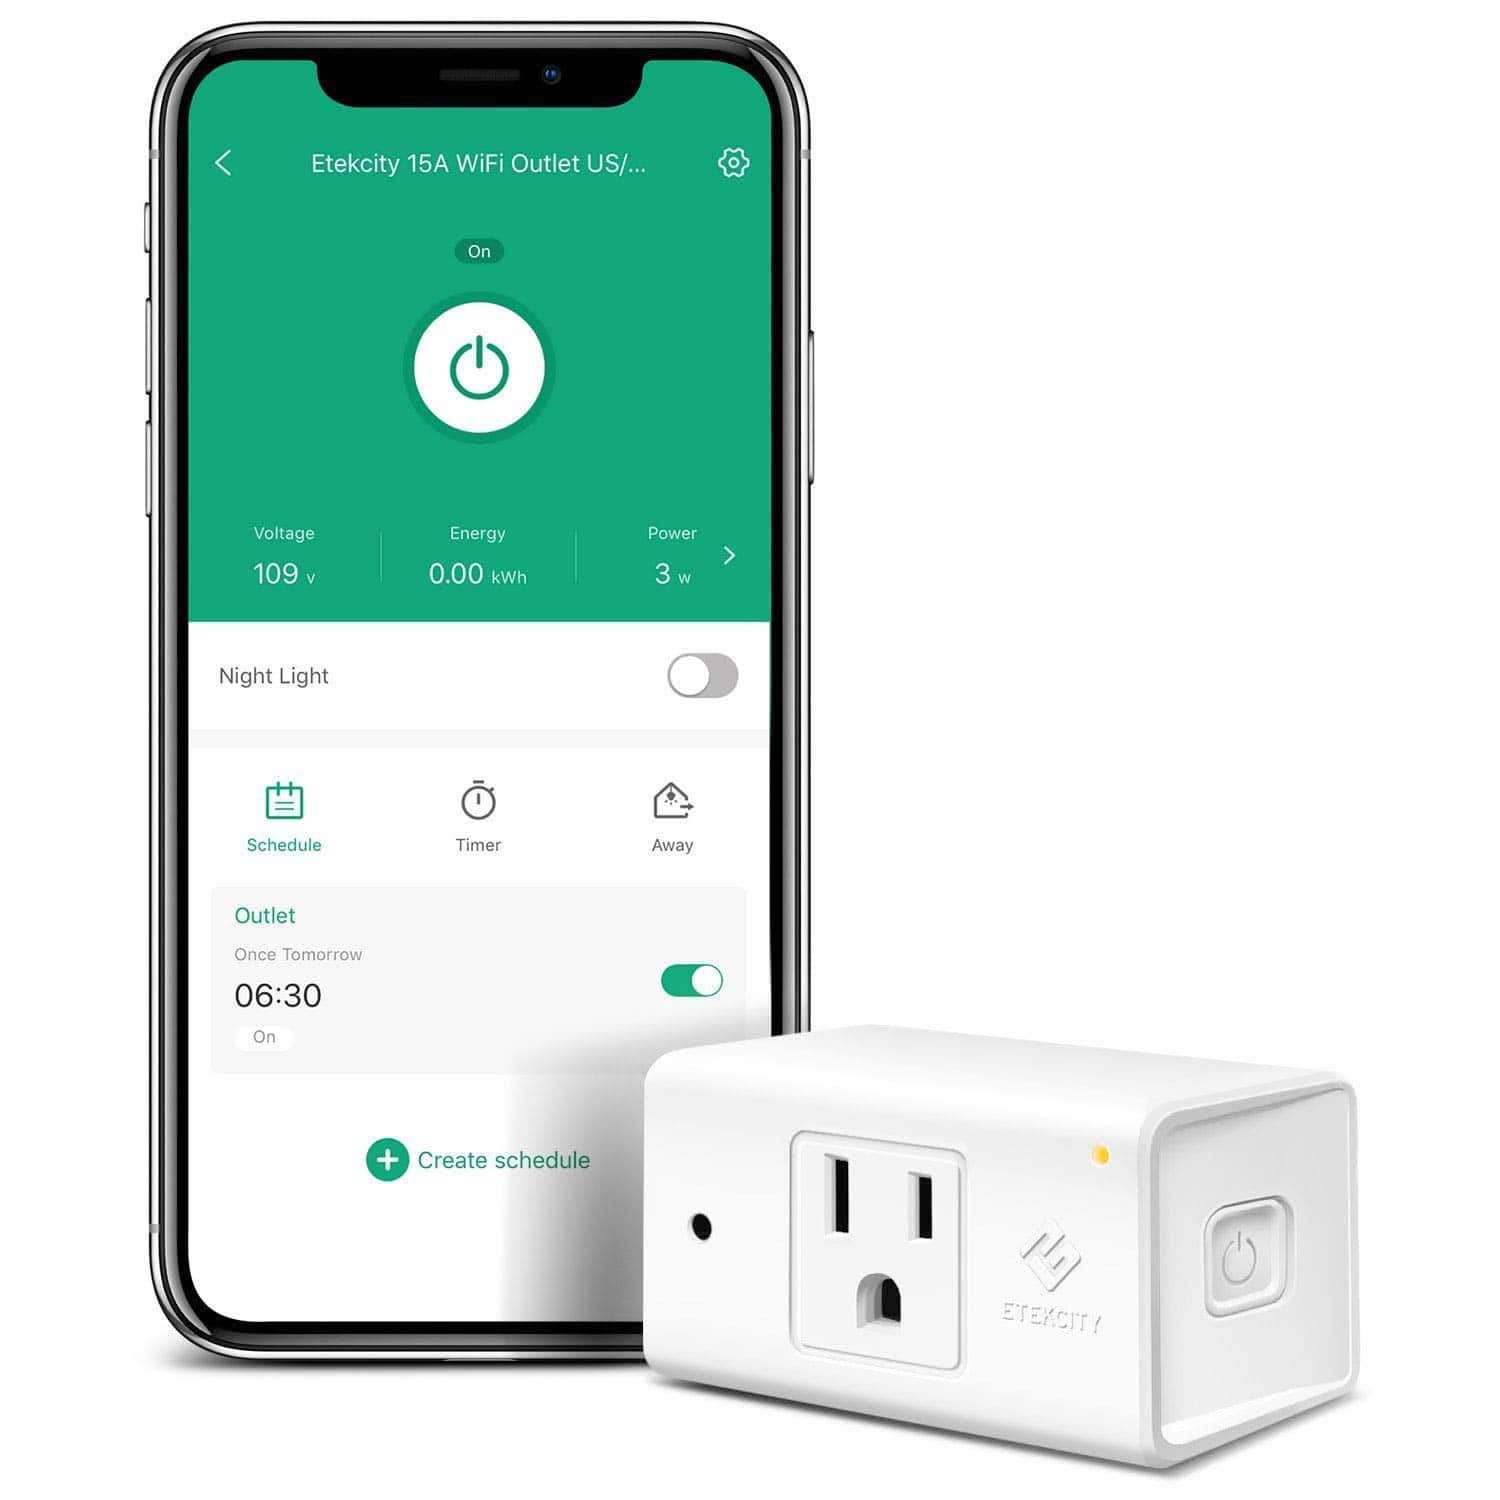 Etekcity WiFi Smart Plug Mini Outlet with Automatic Night Light